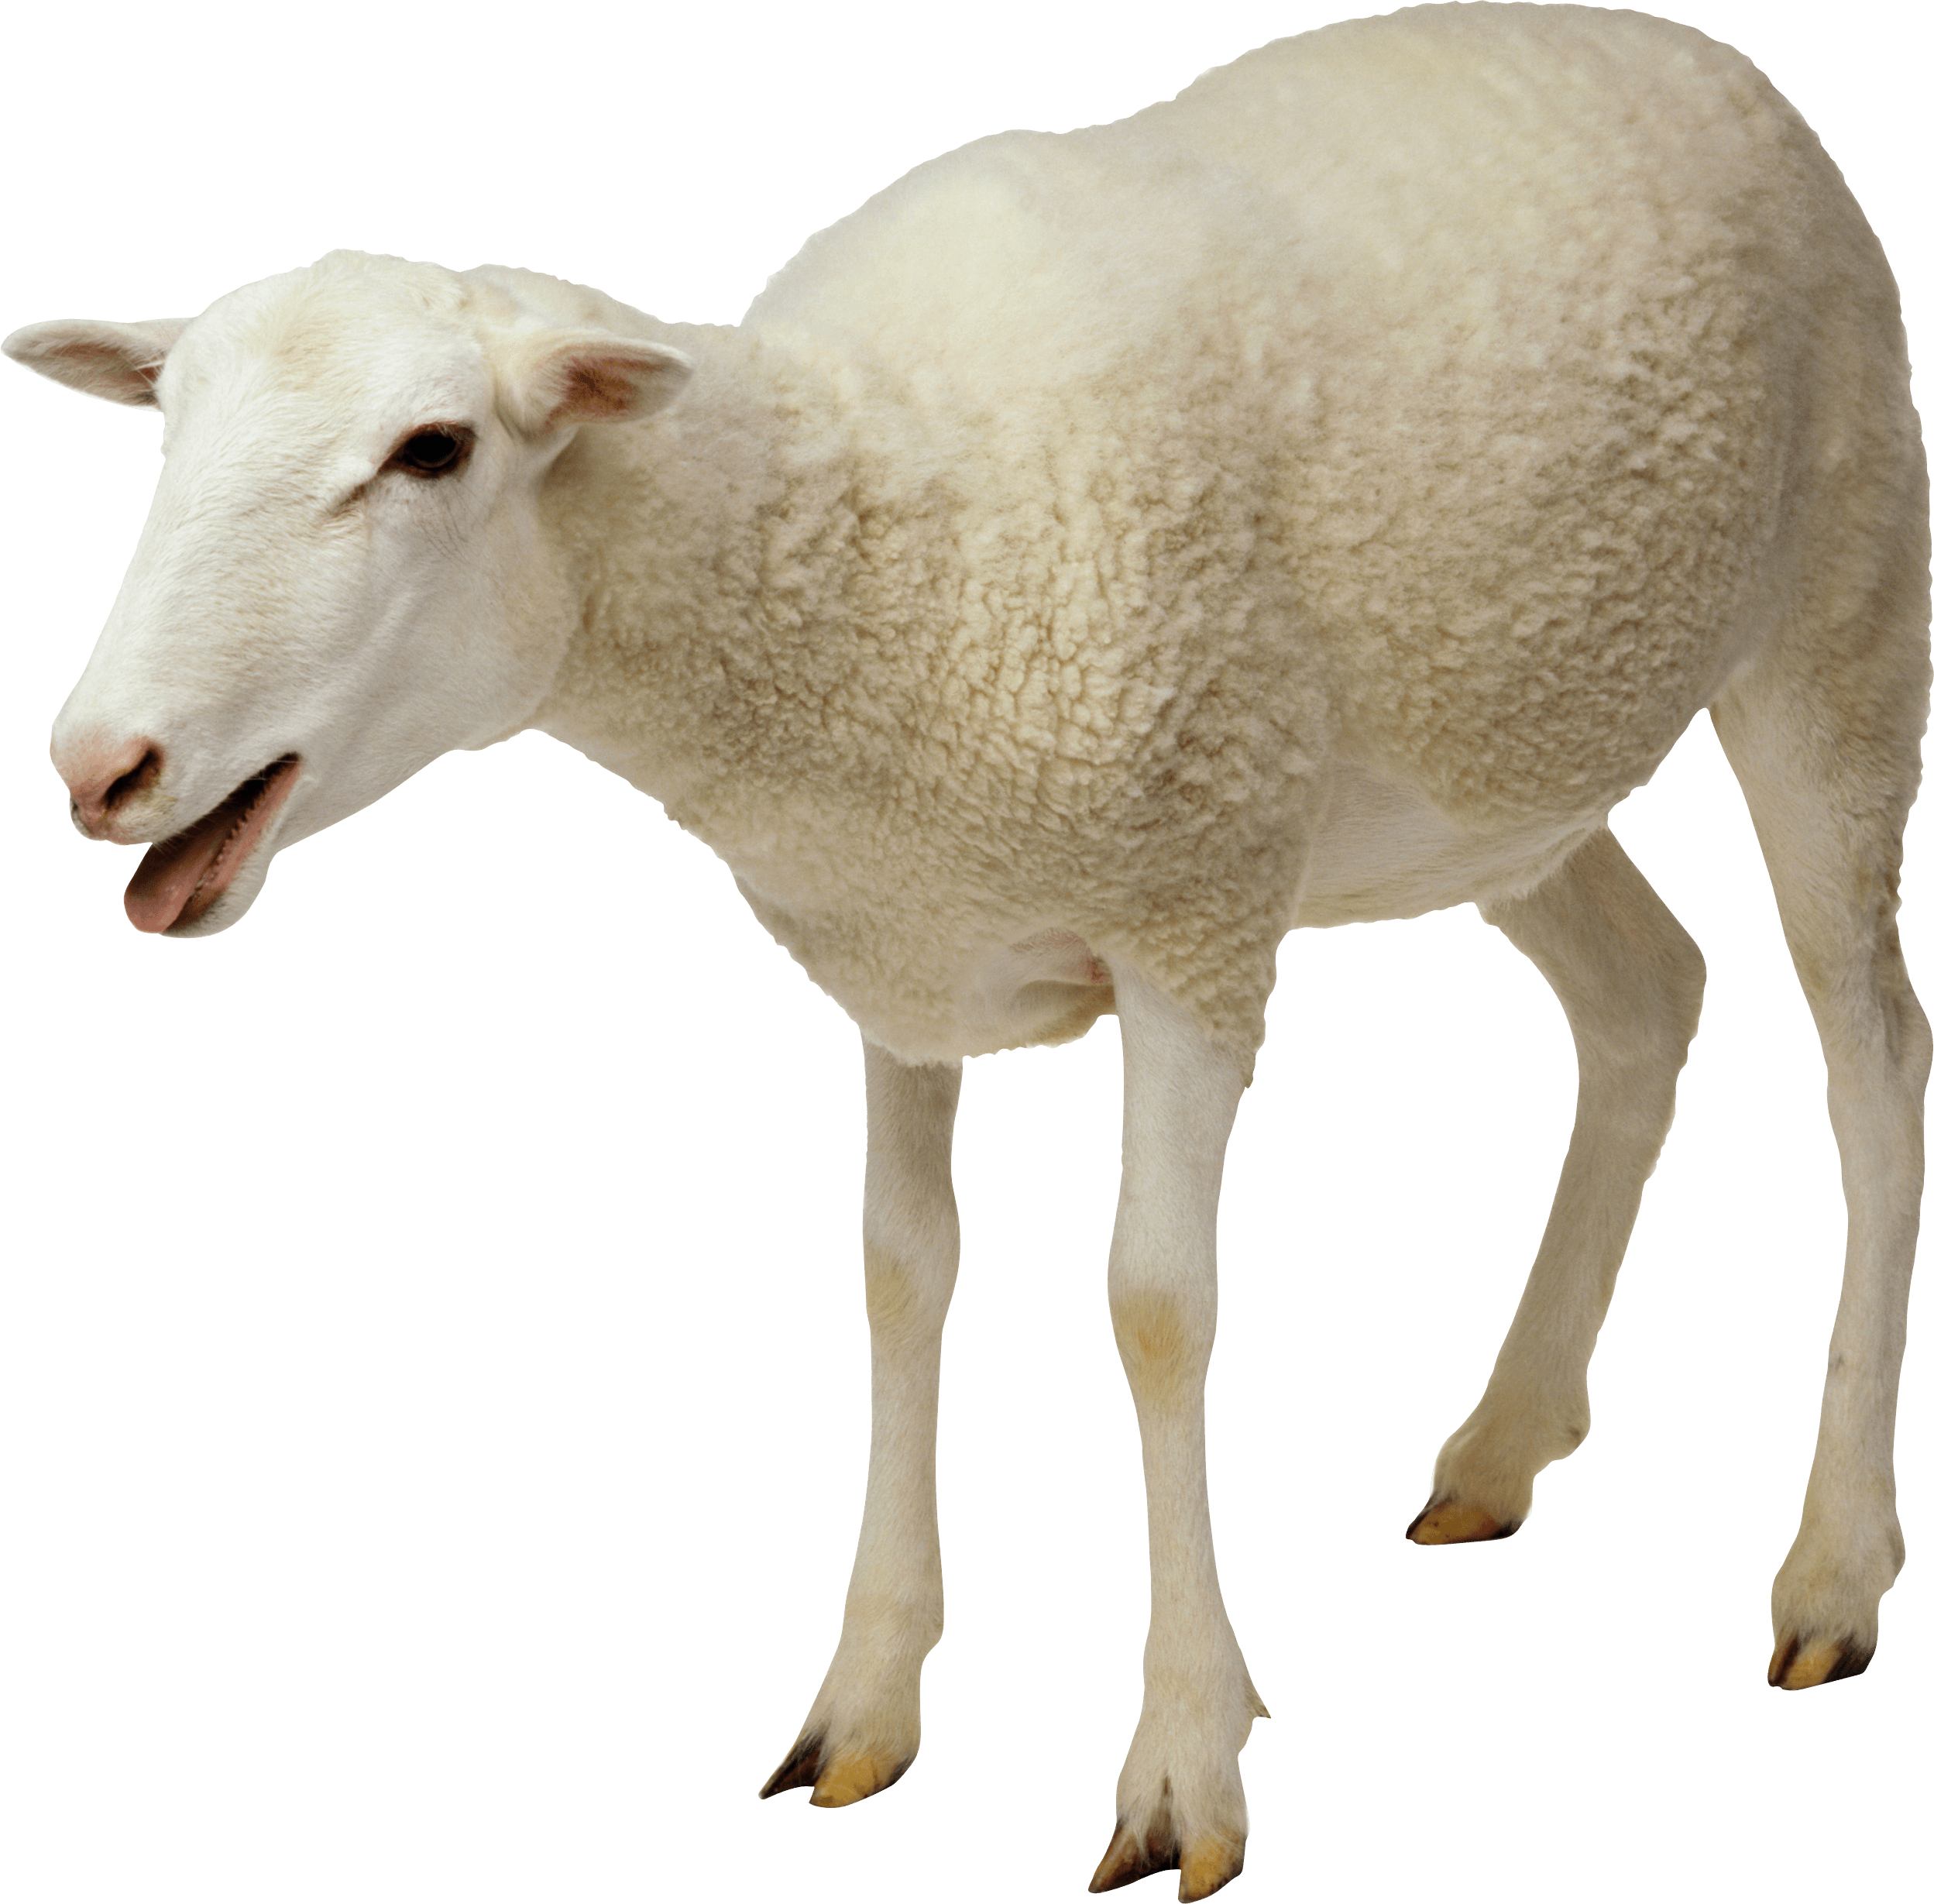 Goat png transparent. White sheep stickpng download